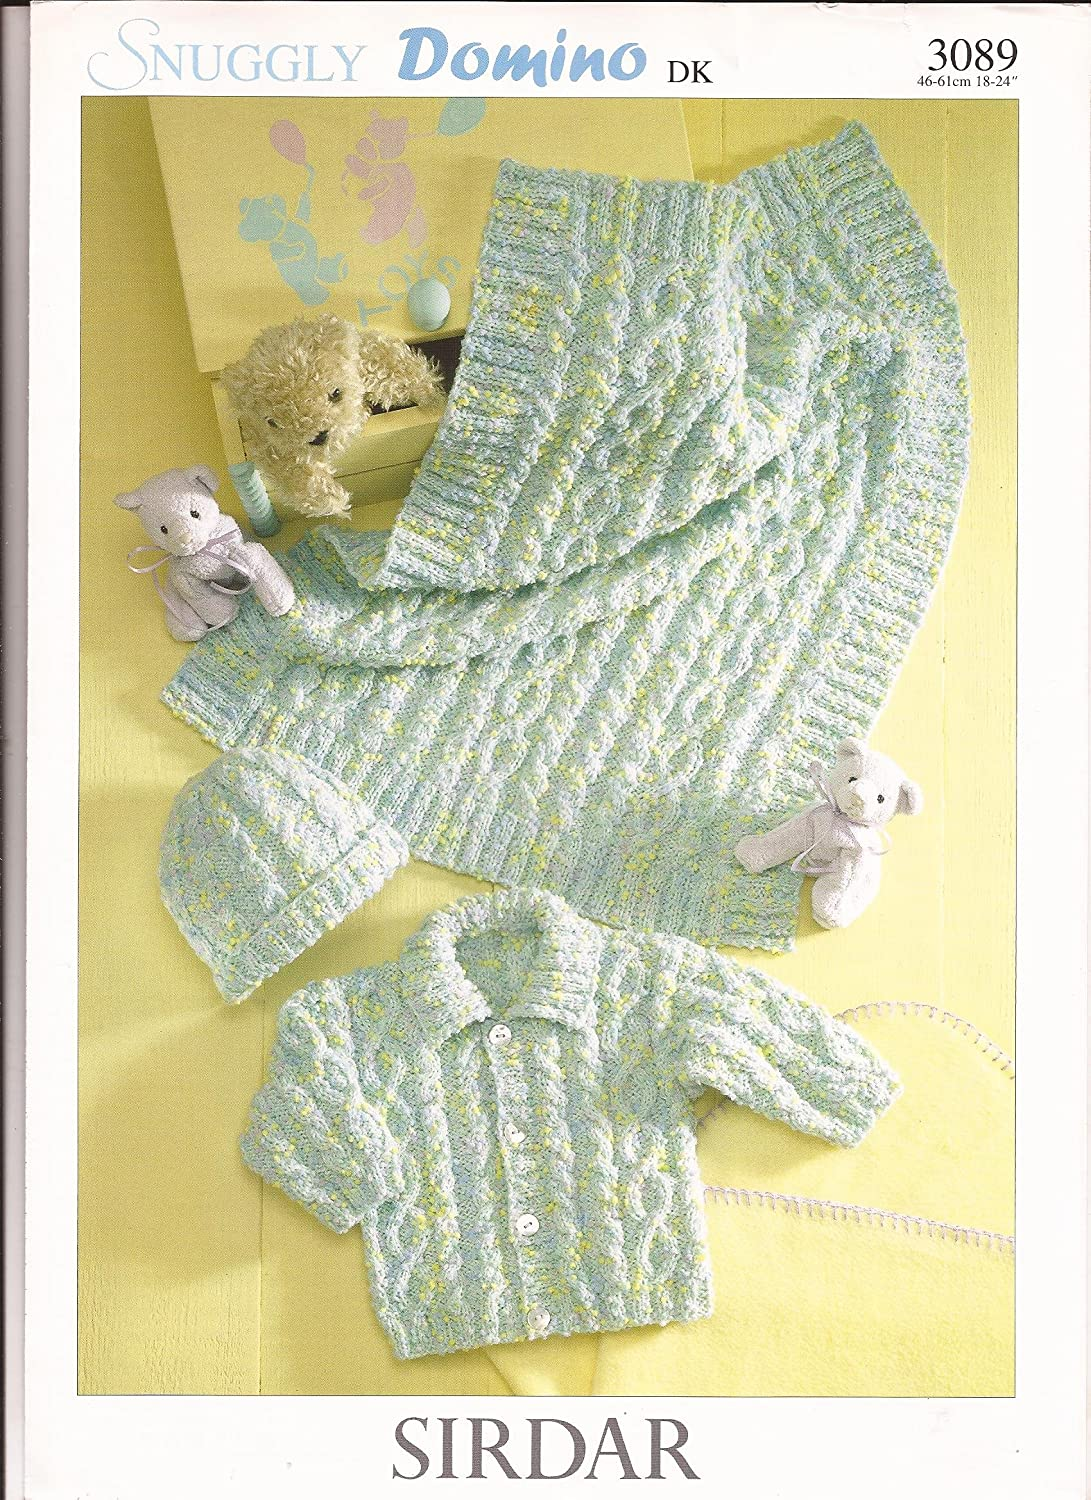 4 yrs Hat /& Blanket for 3 mo Sirdar Snuggly Domino DK Knitting Pattern 3089 Baby /& Child Jacket